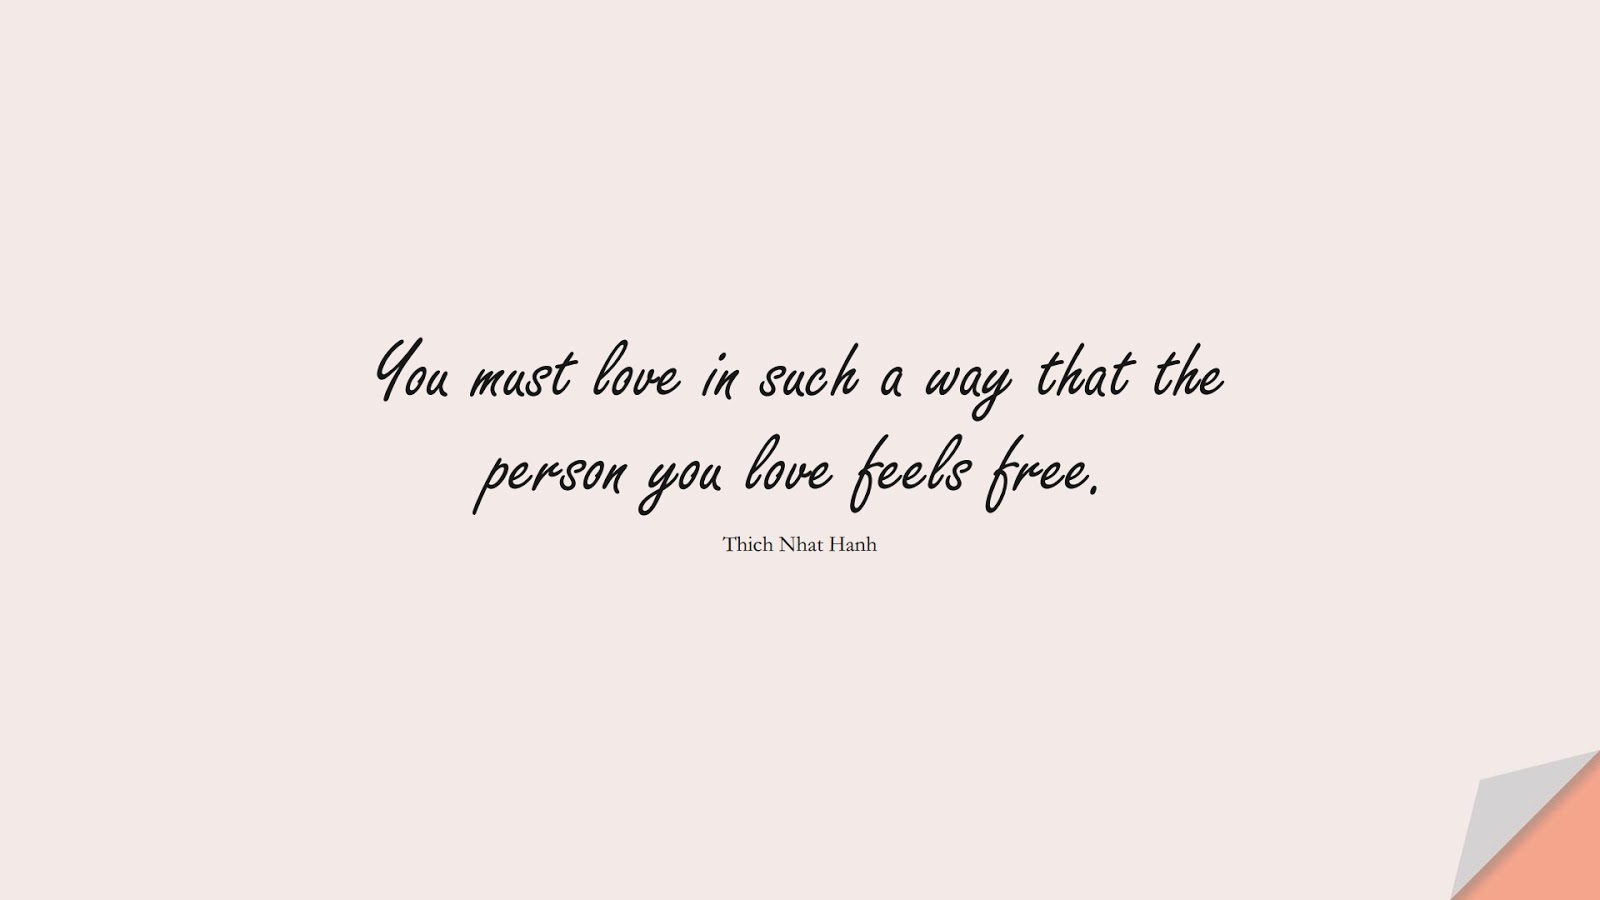 You must love in such a way that the person you love feels free. (Thich Nhat Hanh);  #LoveQuotes